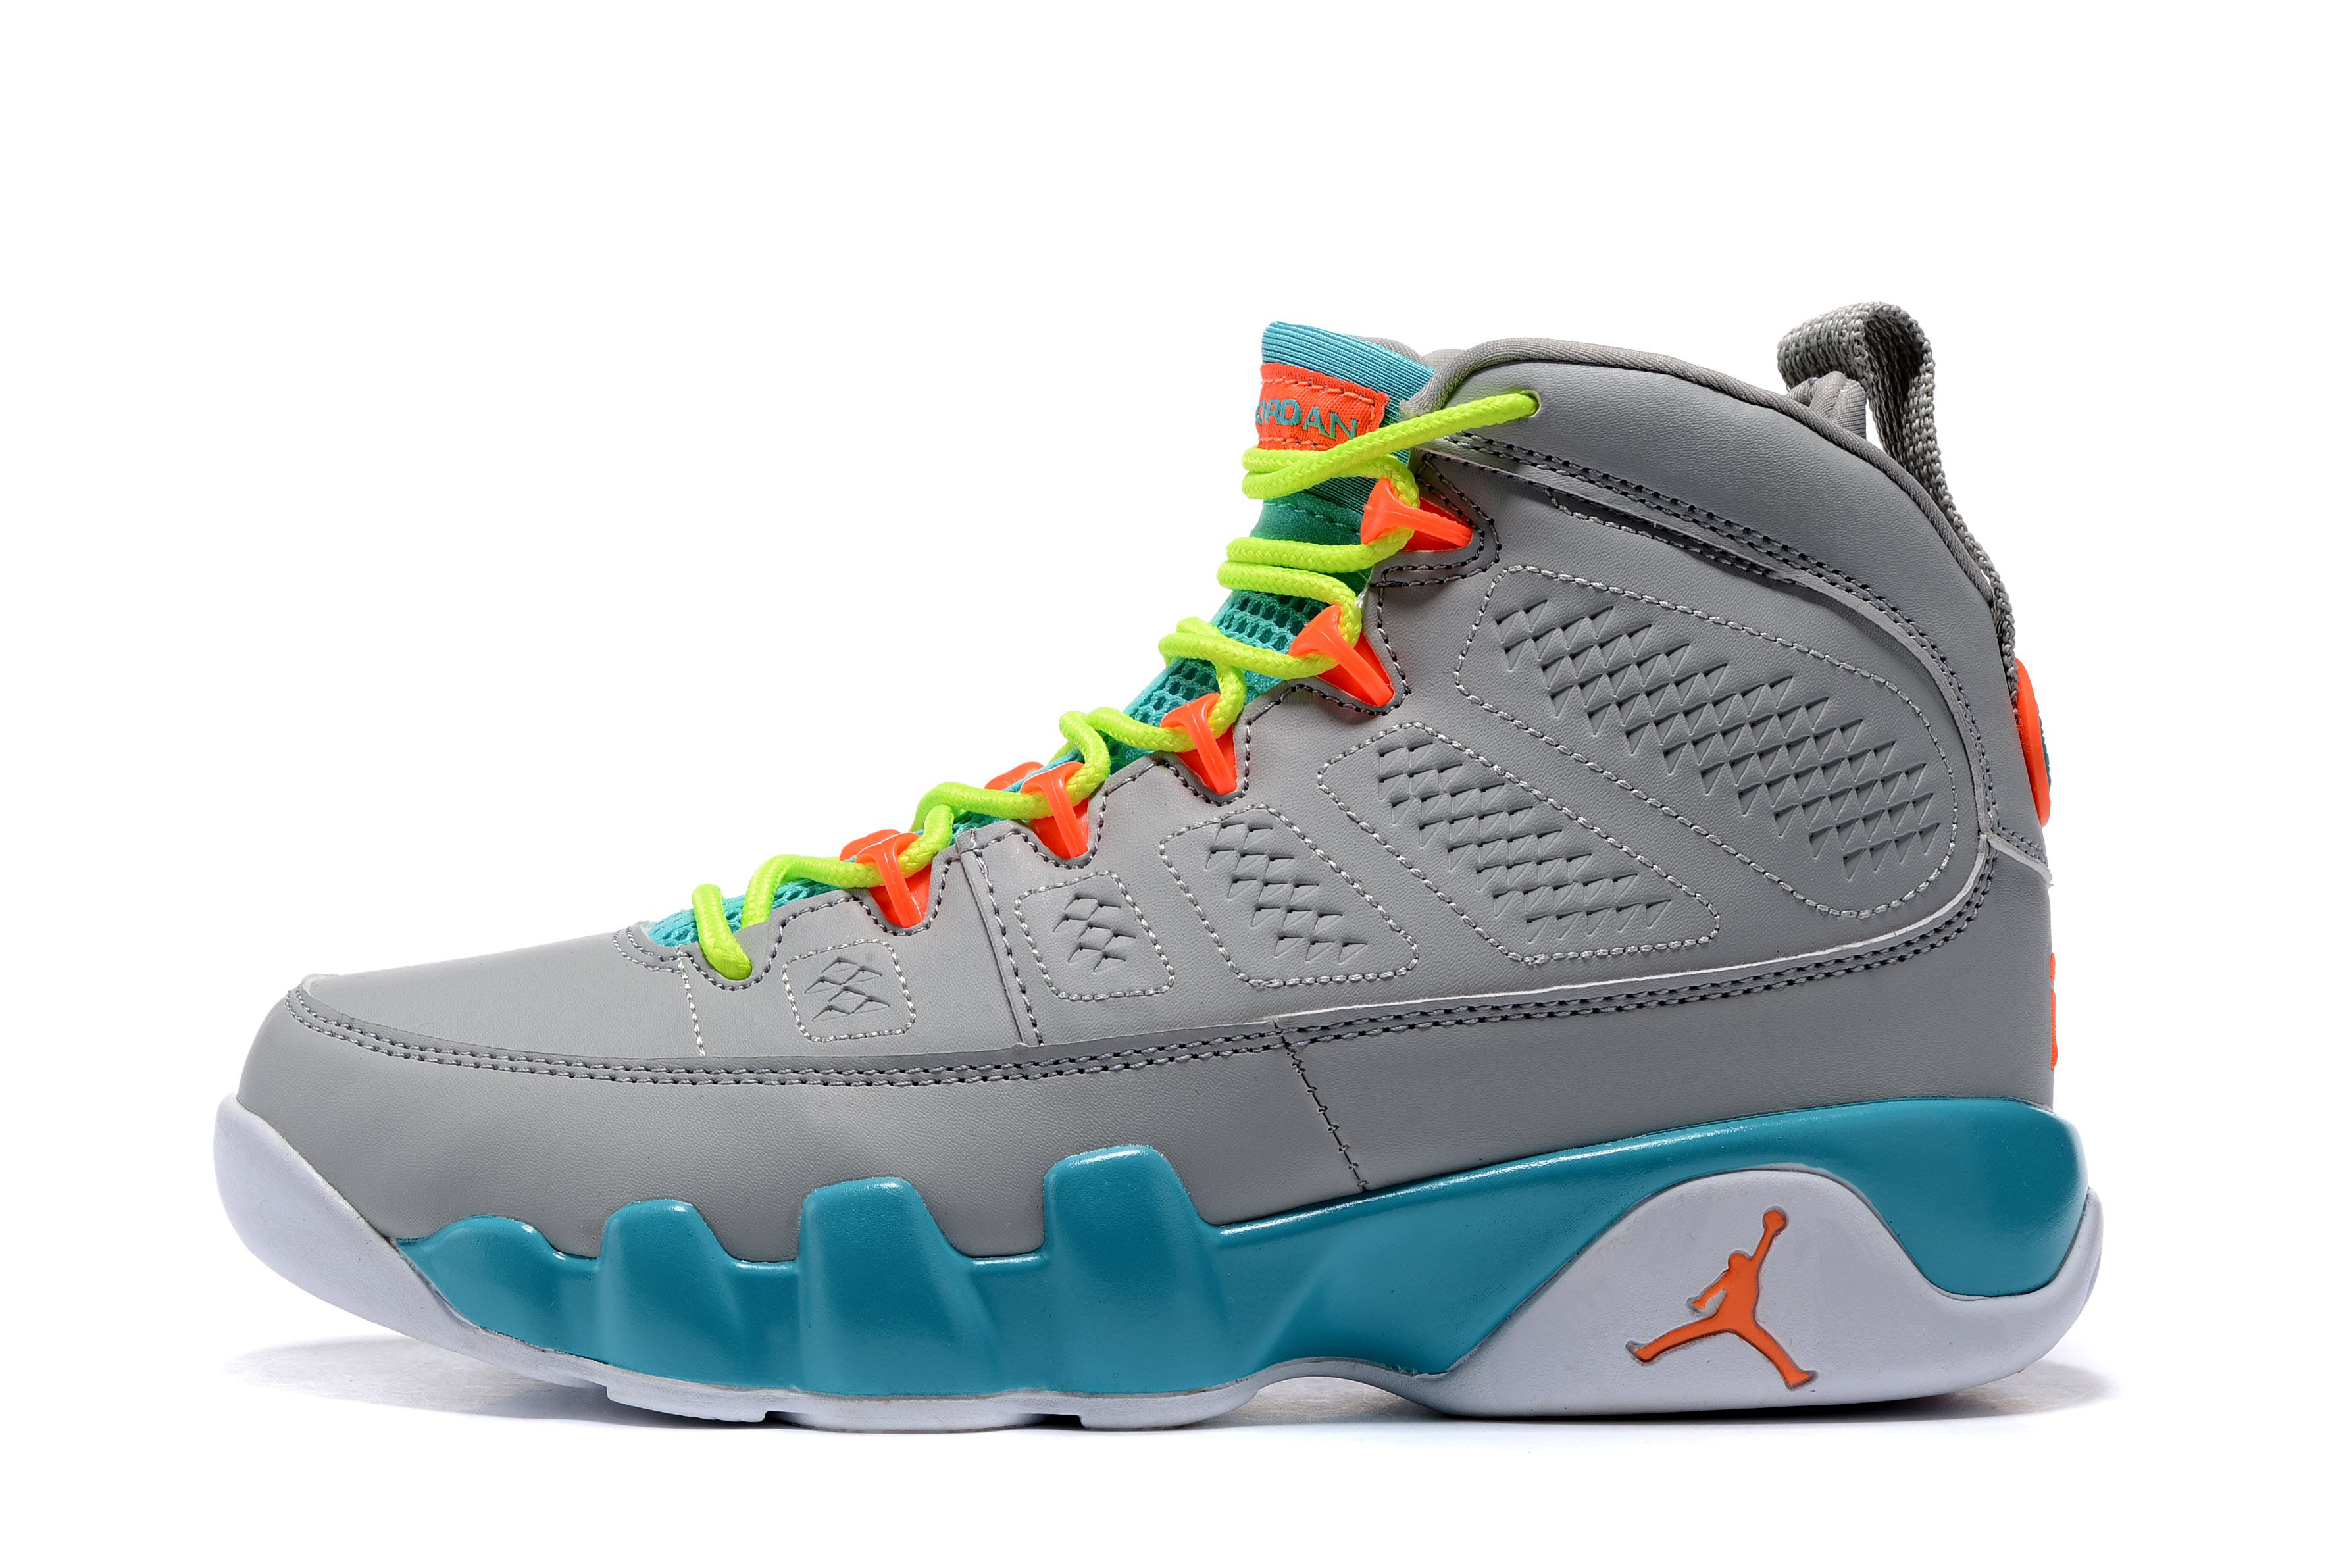 Women's Air Jordan 9 GS Wolf Grey/Orange/Green-White Free Shipping